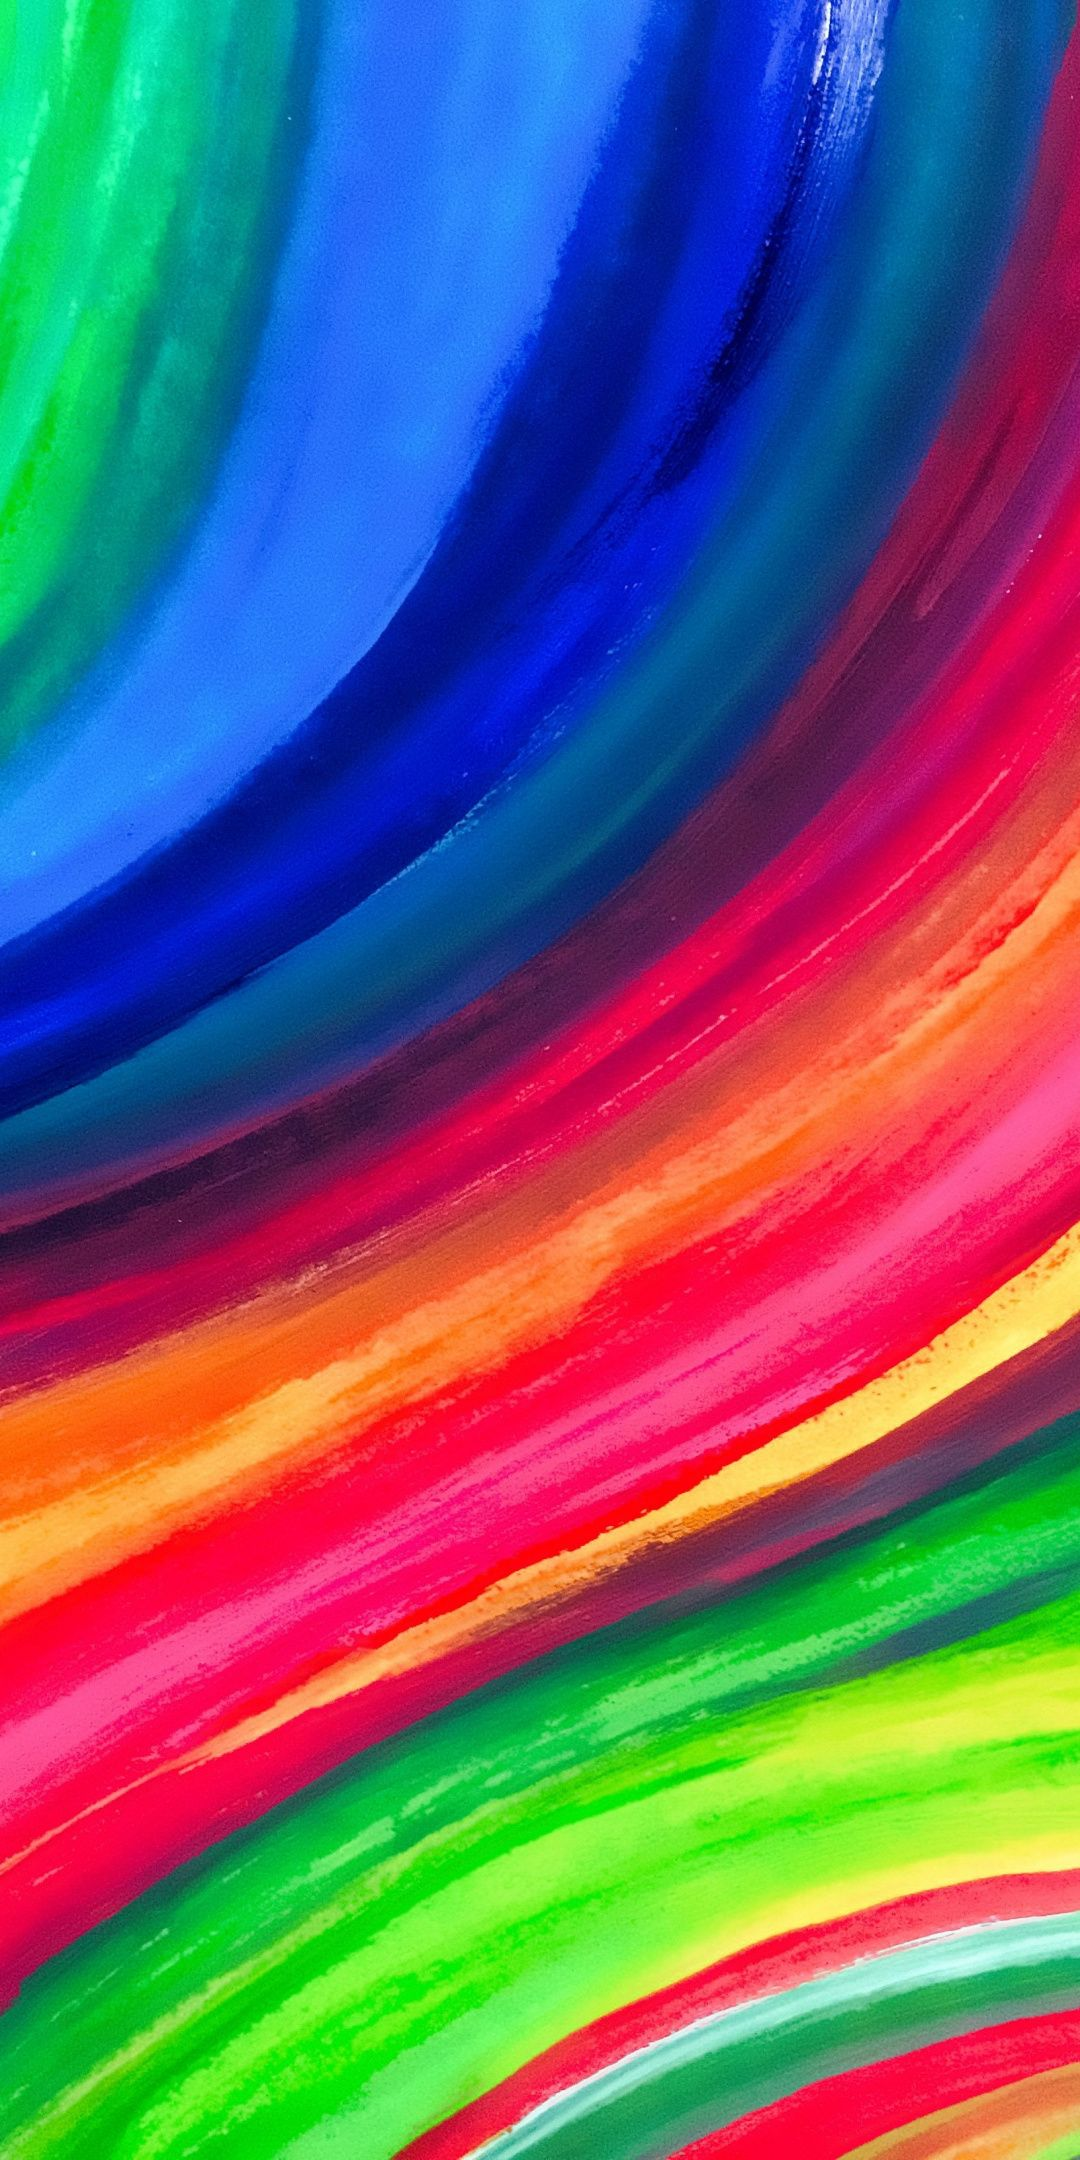 Iridescent Colorful Stripes Lines 1080x2160 Wallpaper Colorful Wallpaper Iphone Wallpaper Cellphone Wallpaper